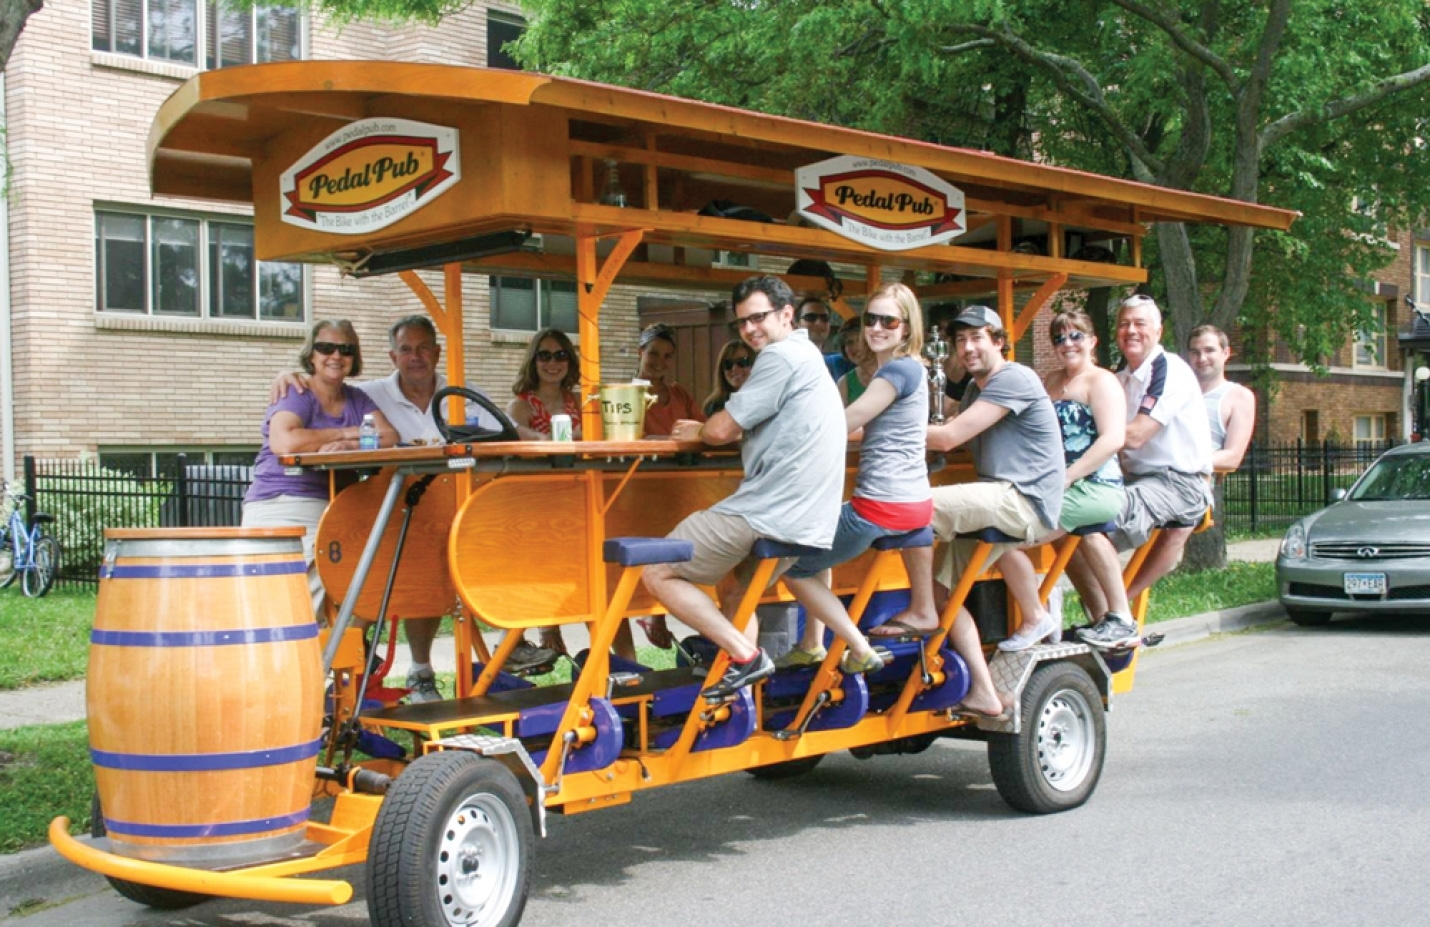 Council To Consider Allowing Trolley-style Pedal Powered Pub Tours March 13th